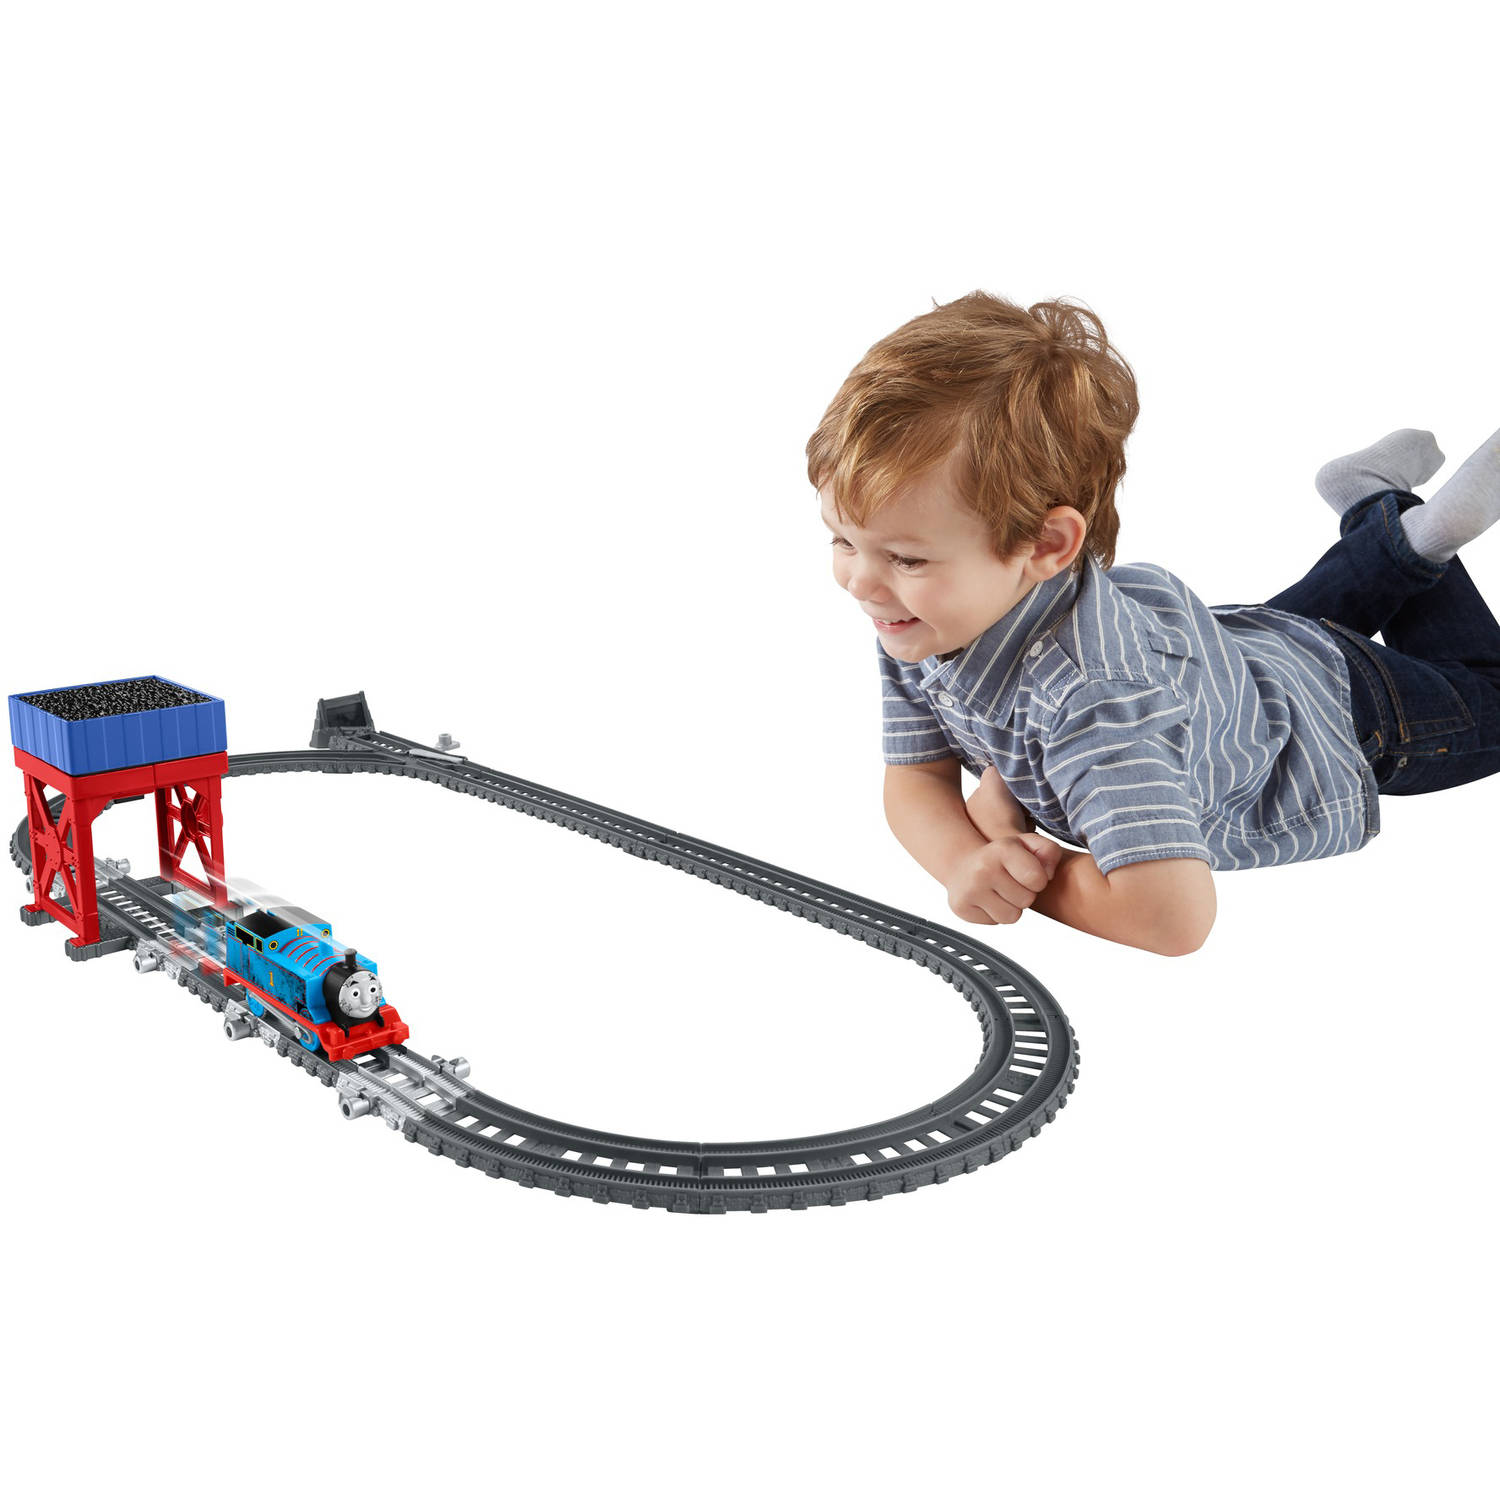 Thomas & Friends TrackMaster 2-in-1 Destination Set by FISHER PRICE